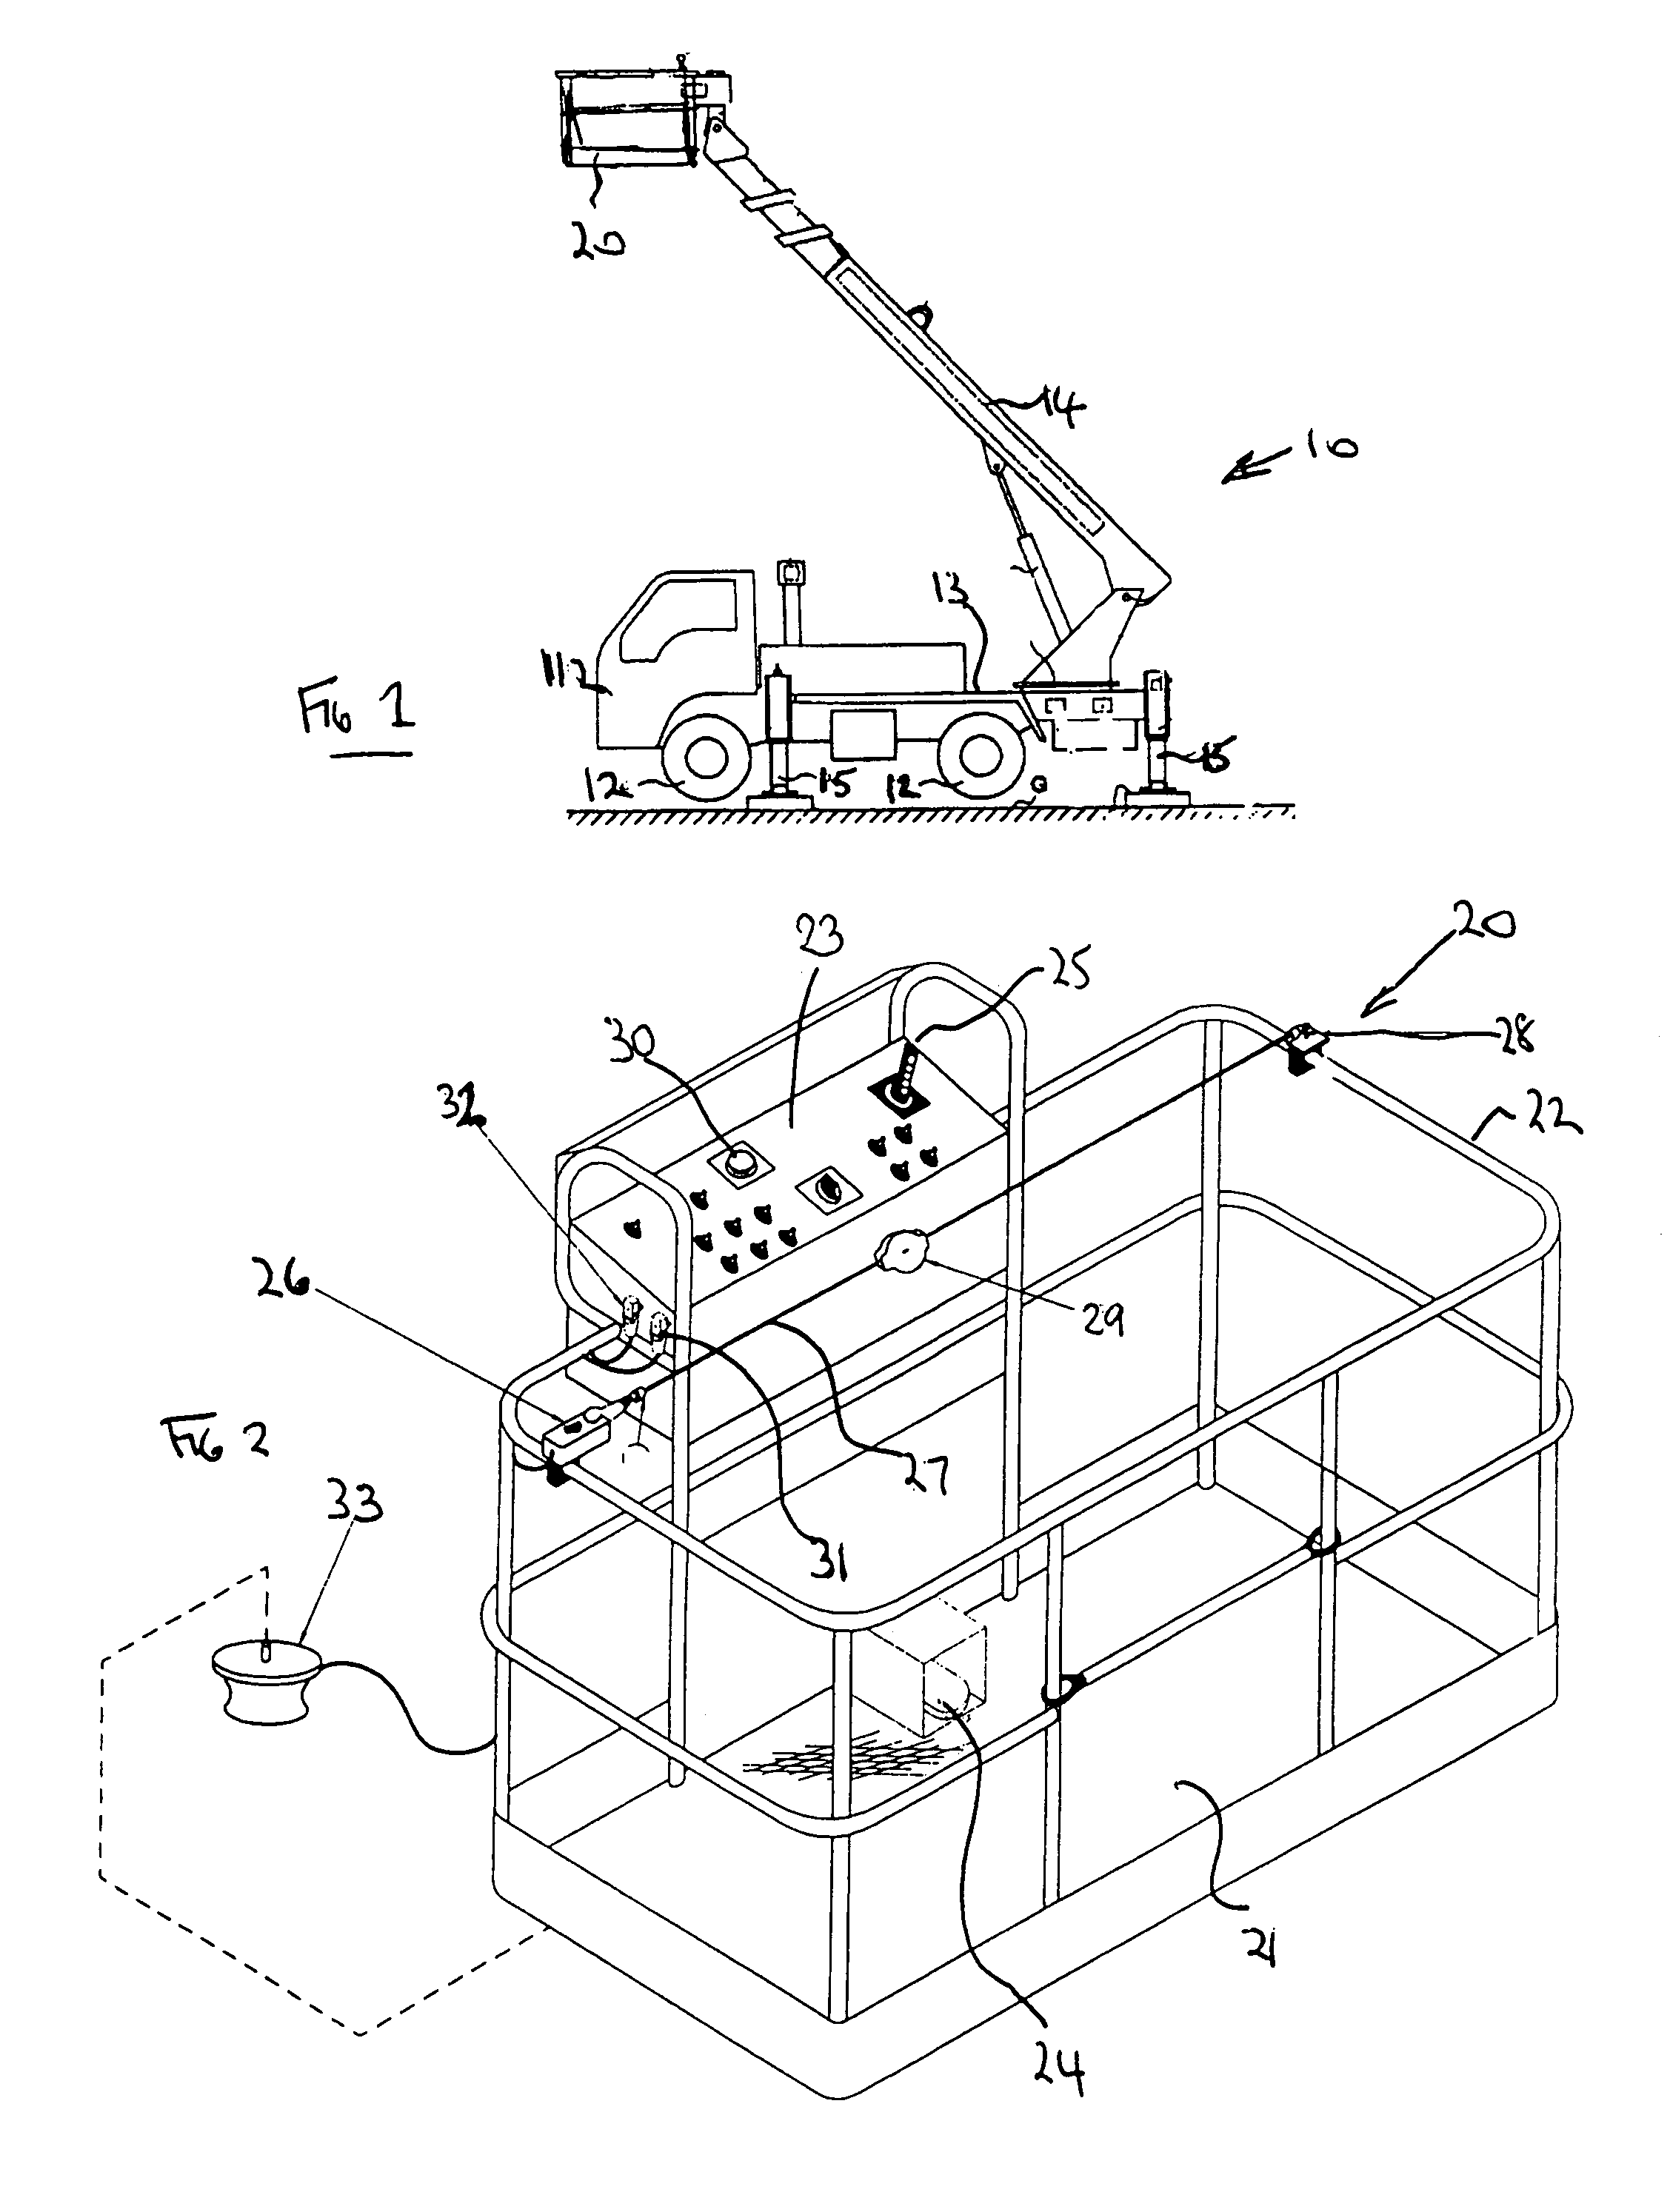 patent us8490746 - aerial lift with safety device